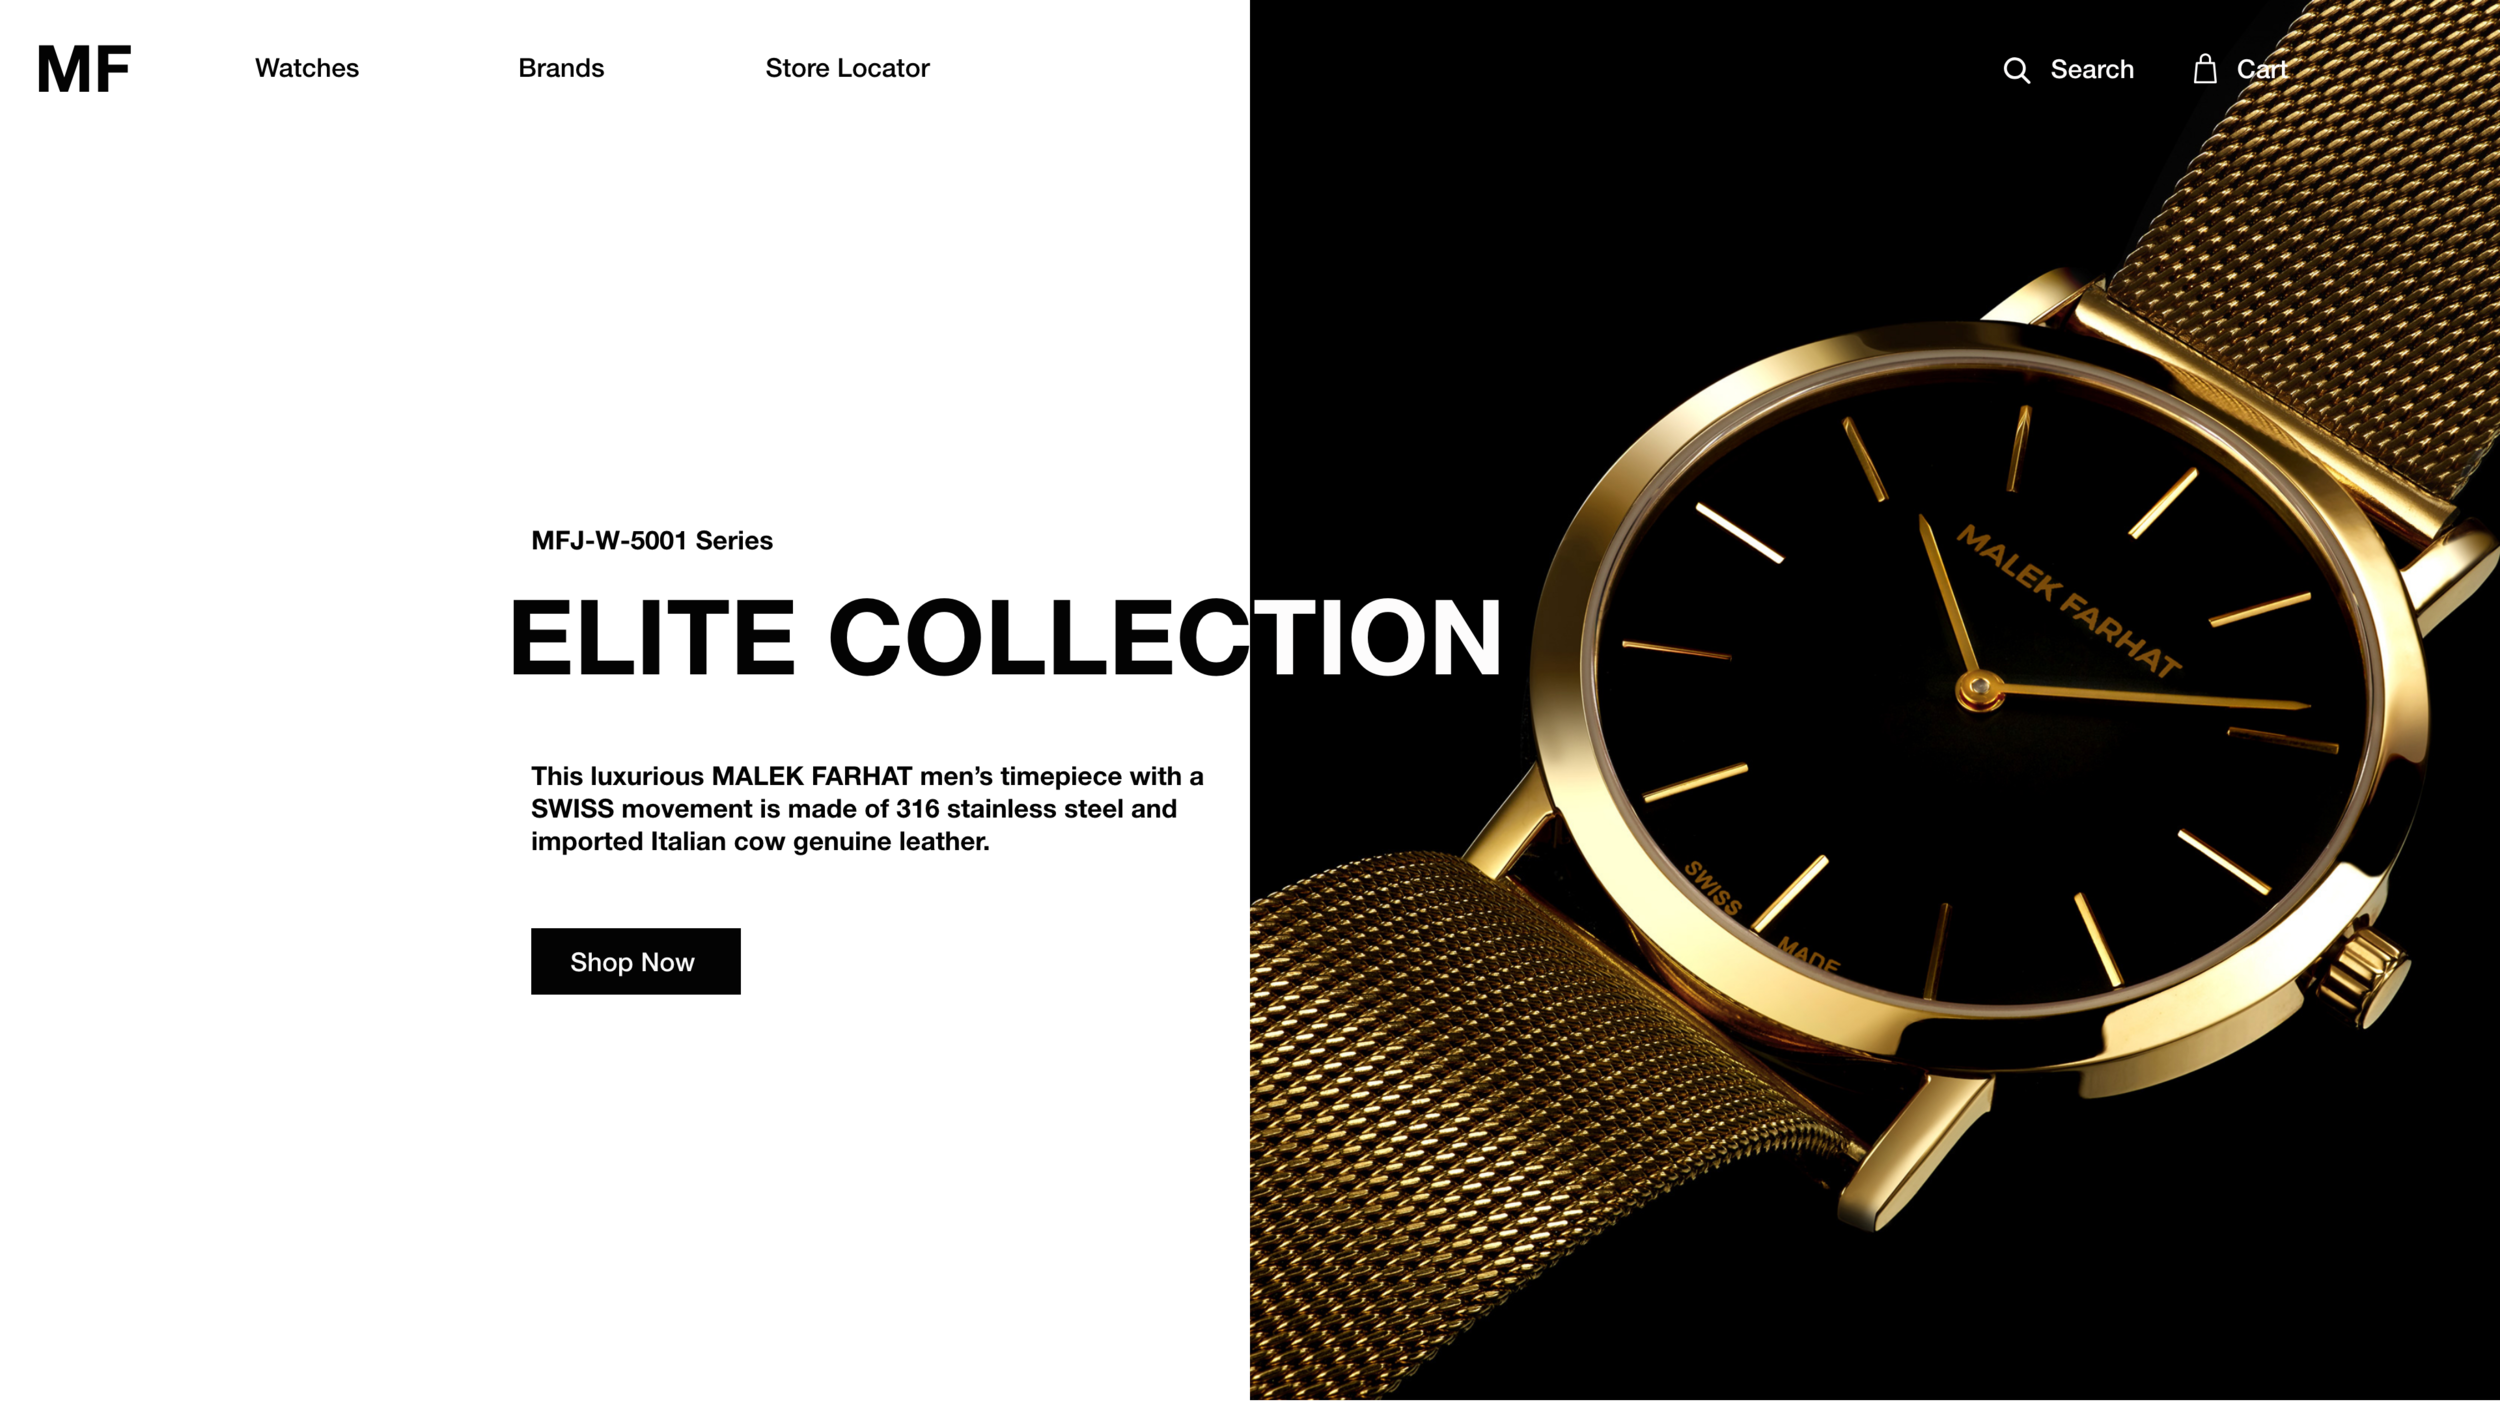 Product Webpage Design for Luxury Watch